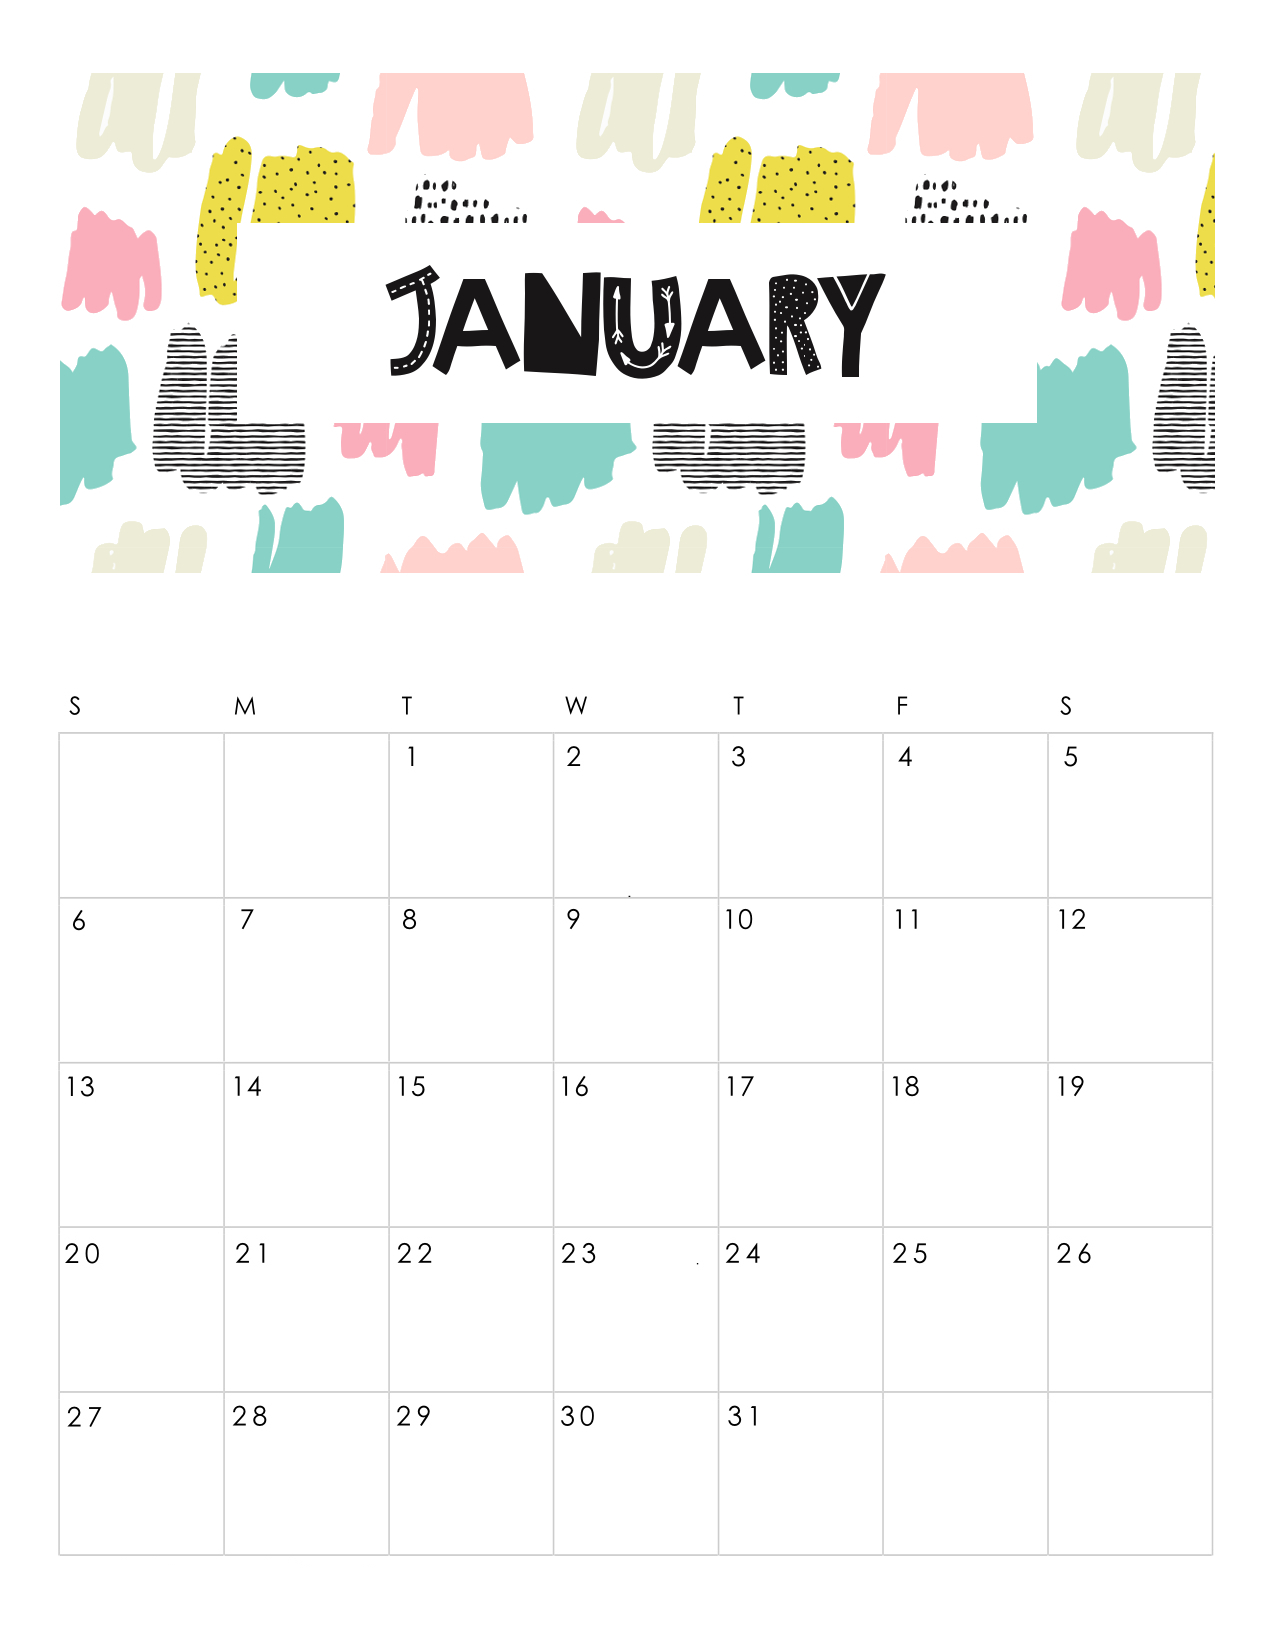 free-printable-abstract-patterned-calendar-2019-january.jpg